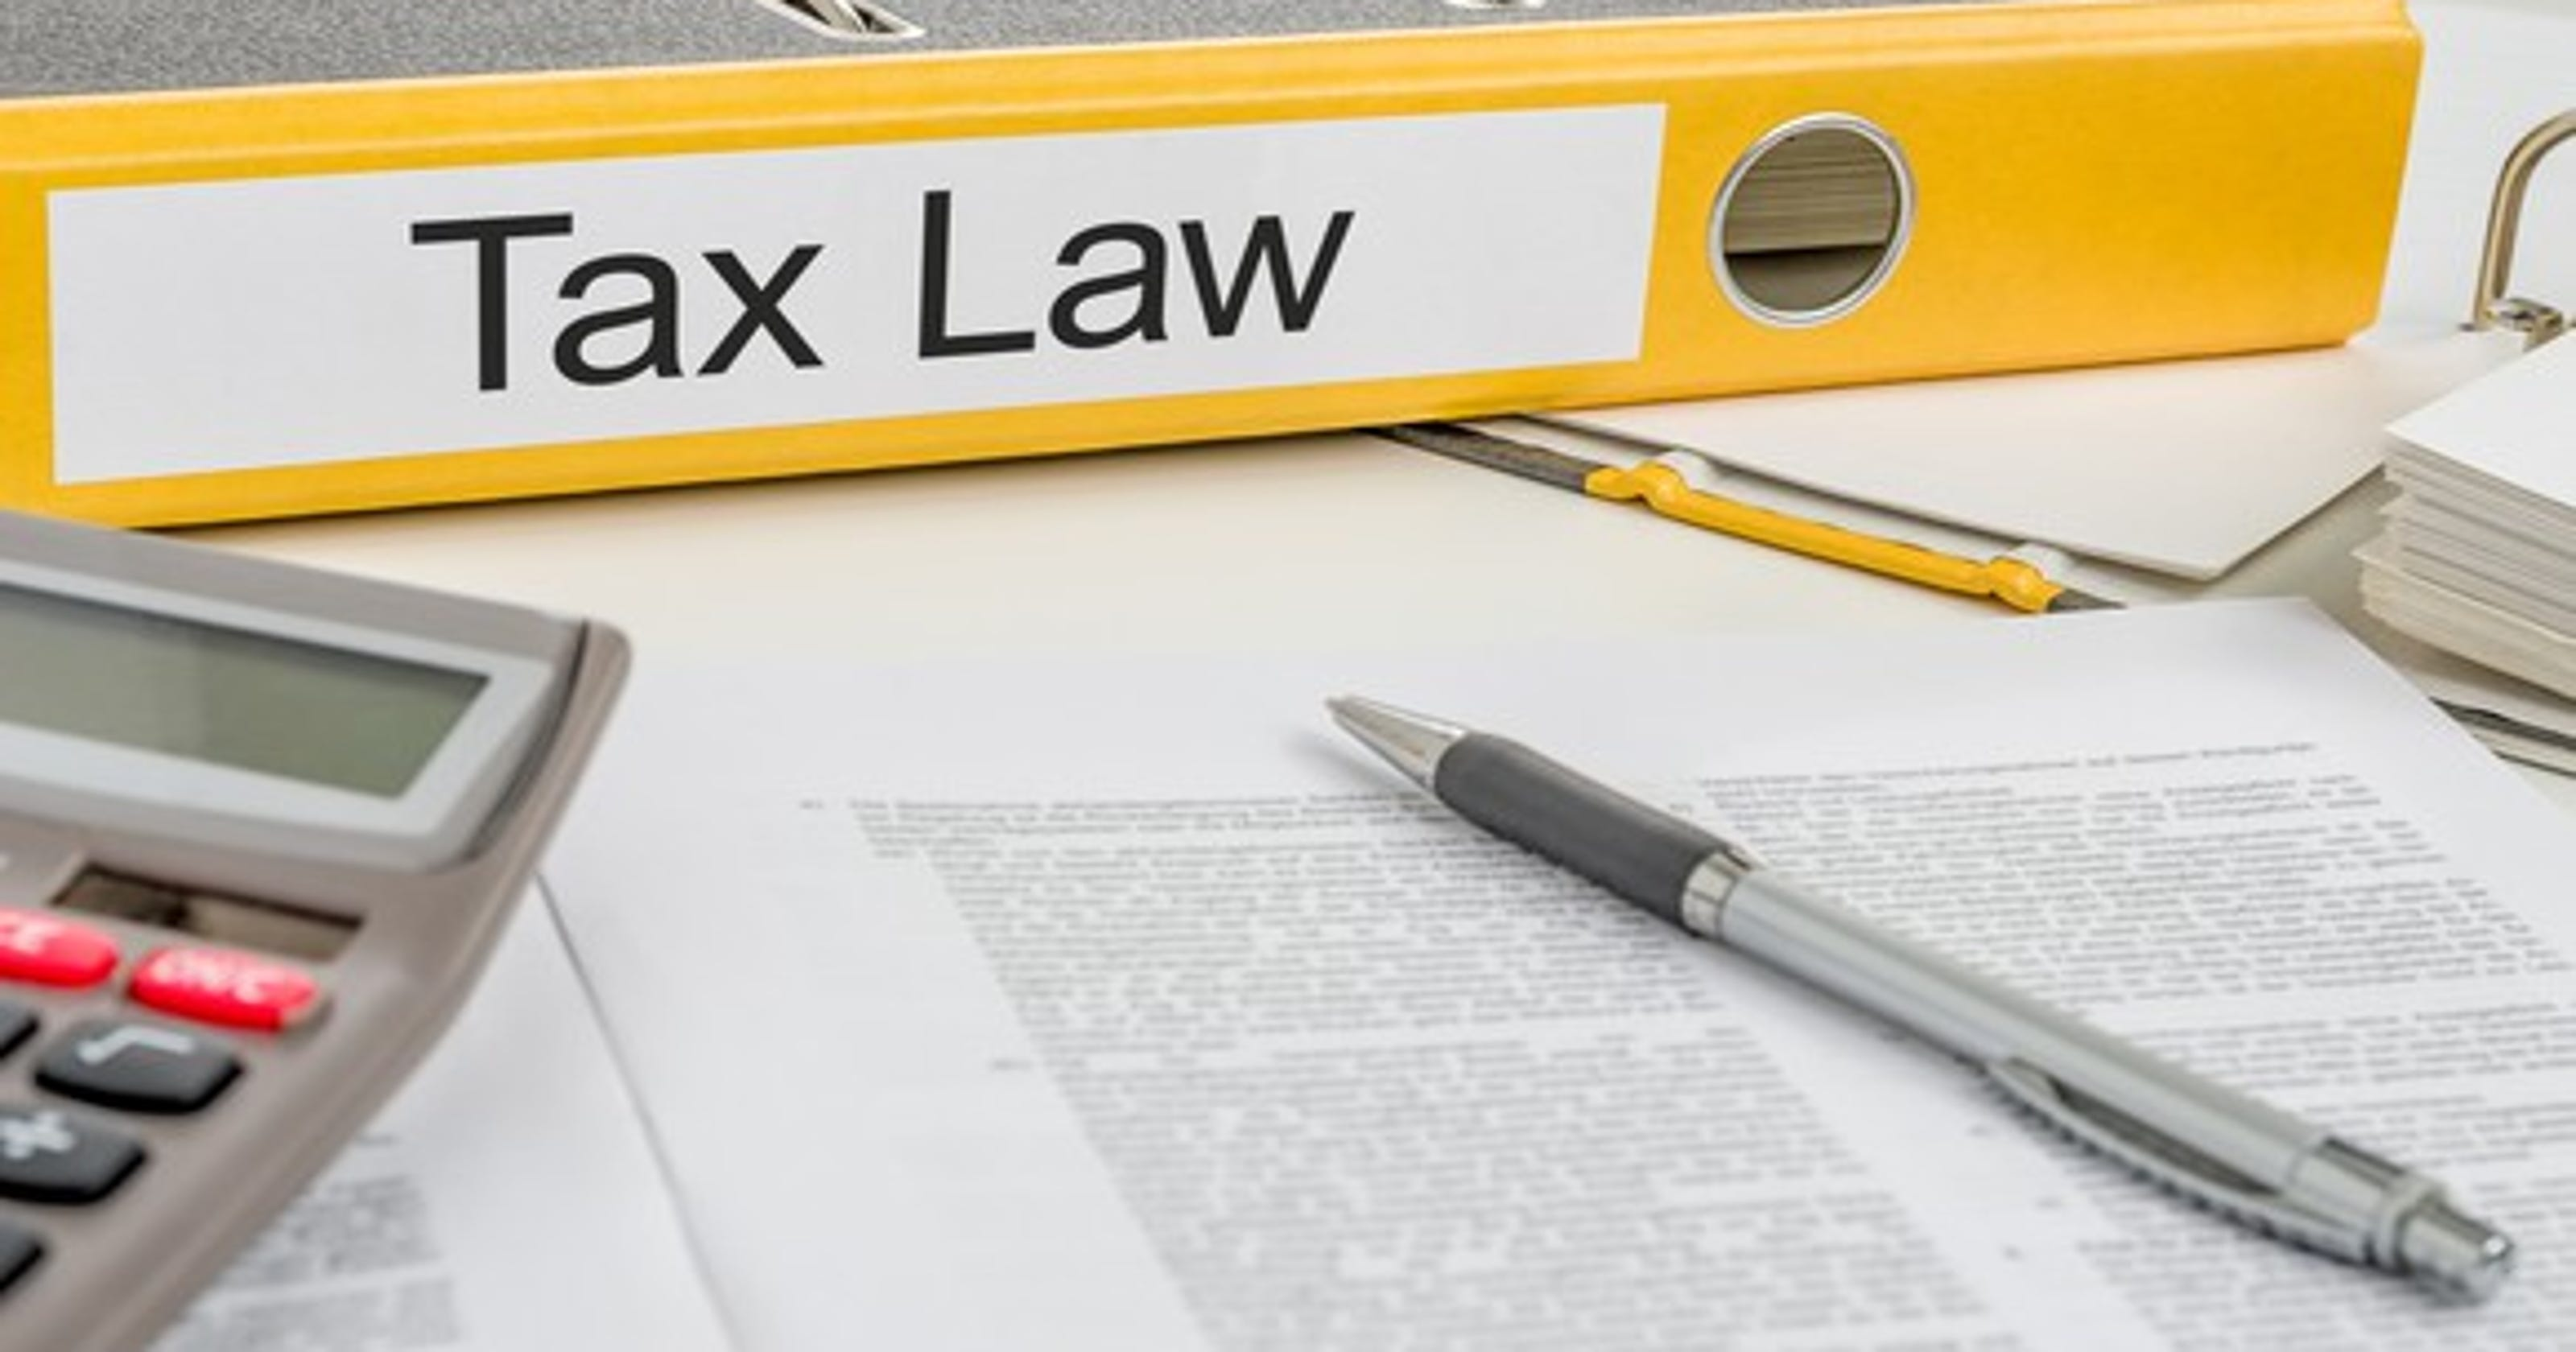 New tax law: Steps needed to cut property tax bill are worth time, money